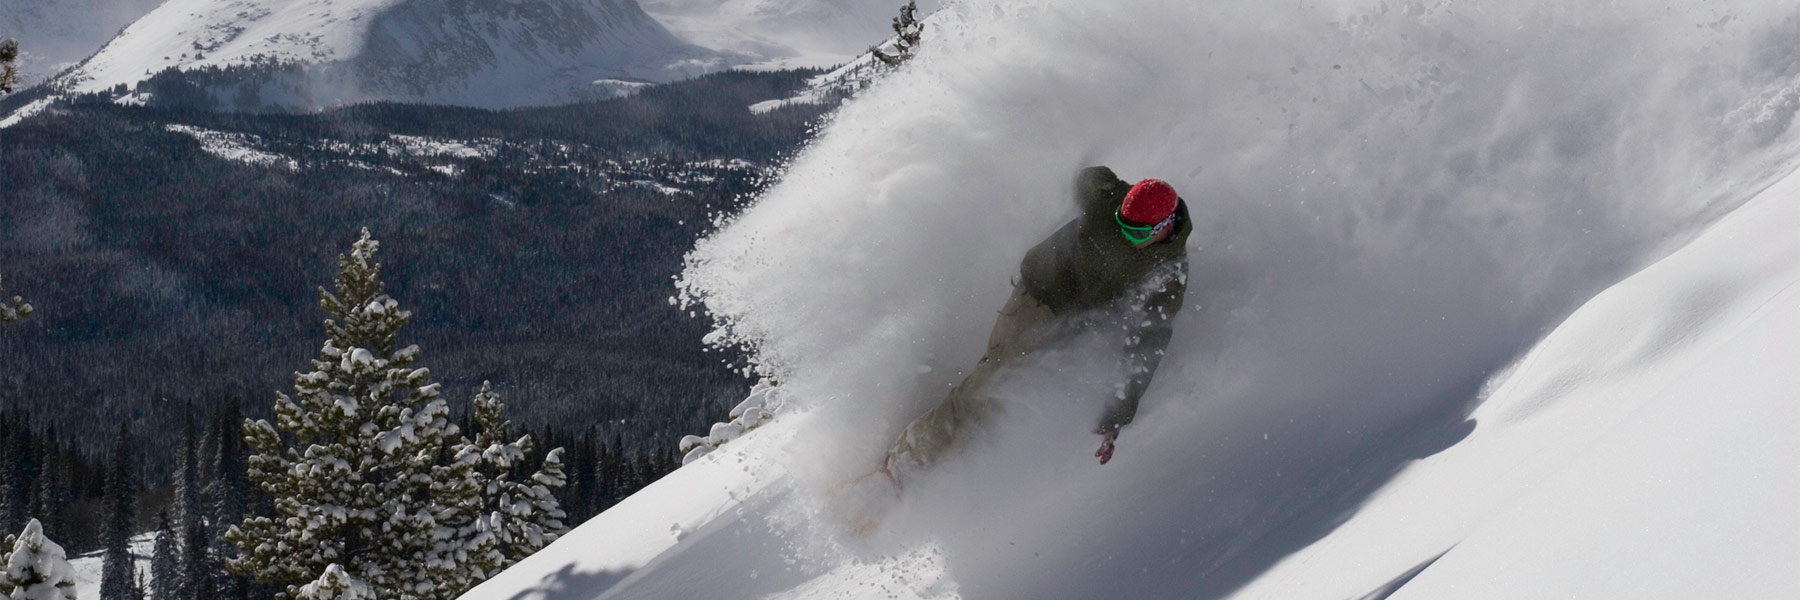 Breckenridge, CO Ski Package: Save 10 - 40% at Beaver Run Resort! Book by September 14th!